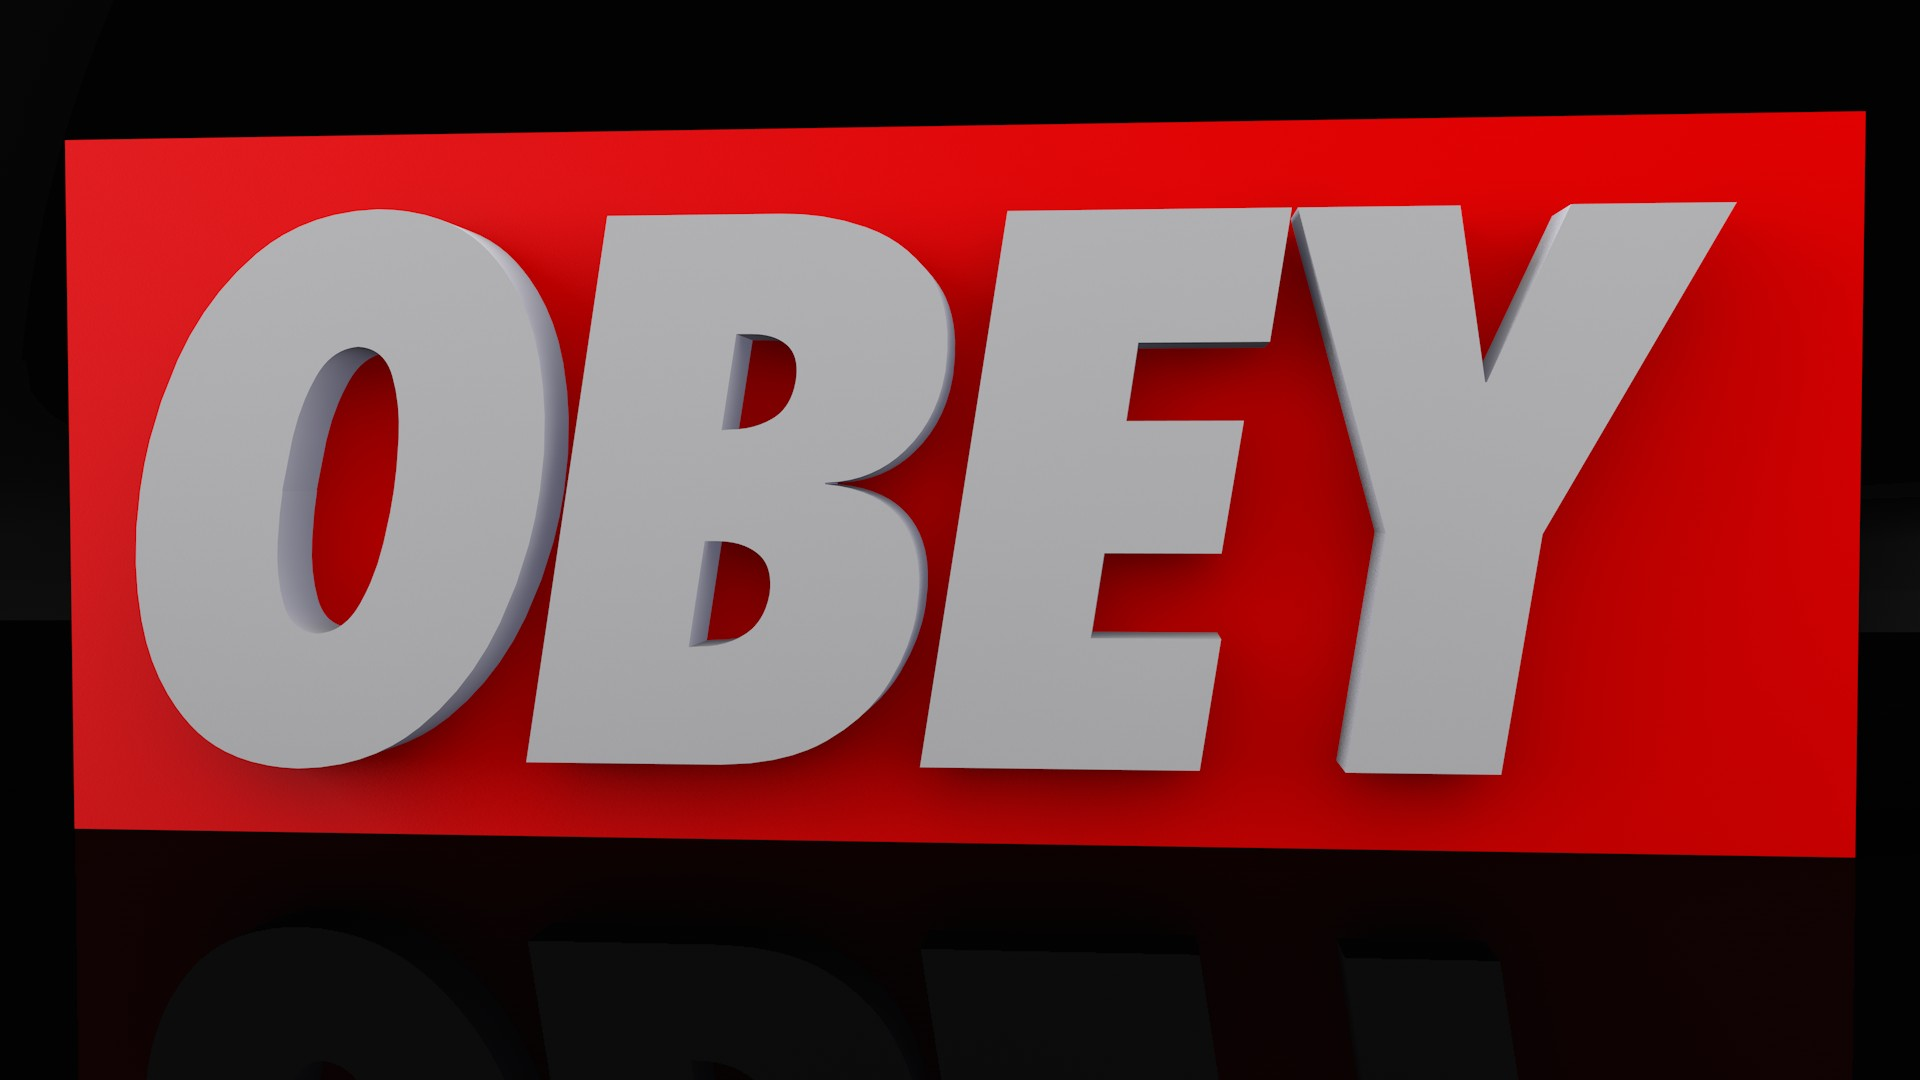 Obey Wallpaper ·① Download Free Awesome Wallpapers For